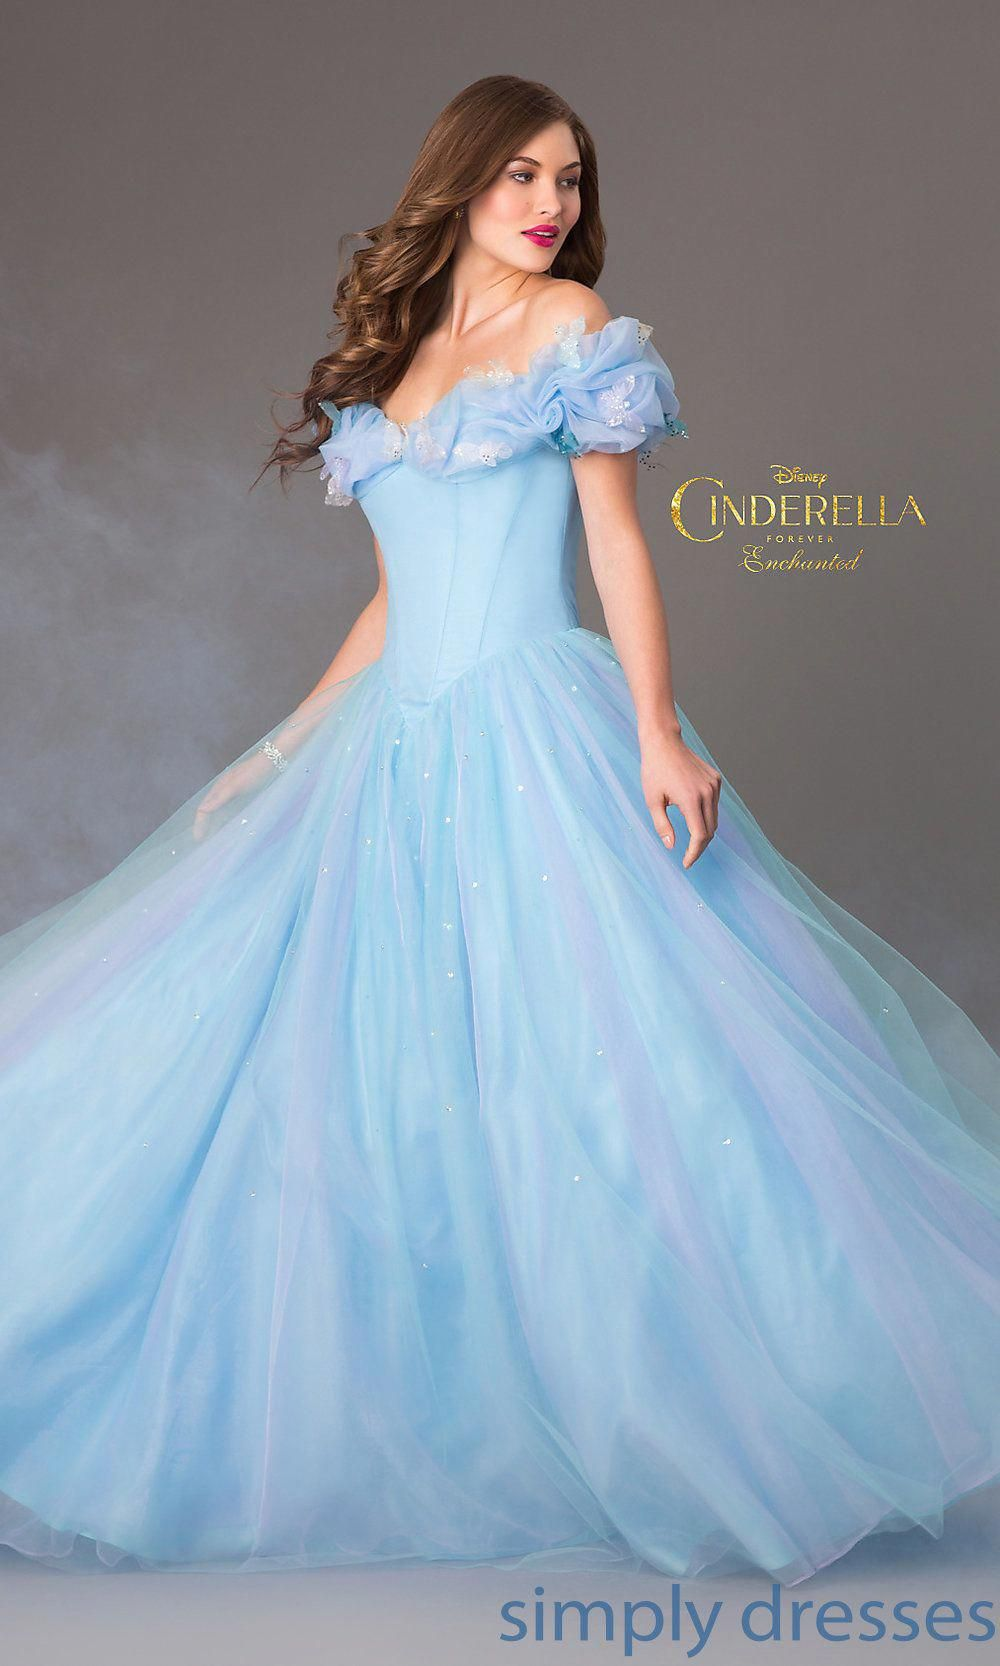 3320439a06e Shop SimplyDresses for blue ball gowns and Cinderella prom dresses.  Enchanted Cinderella keepsake gown from